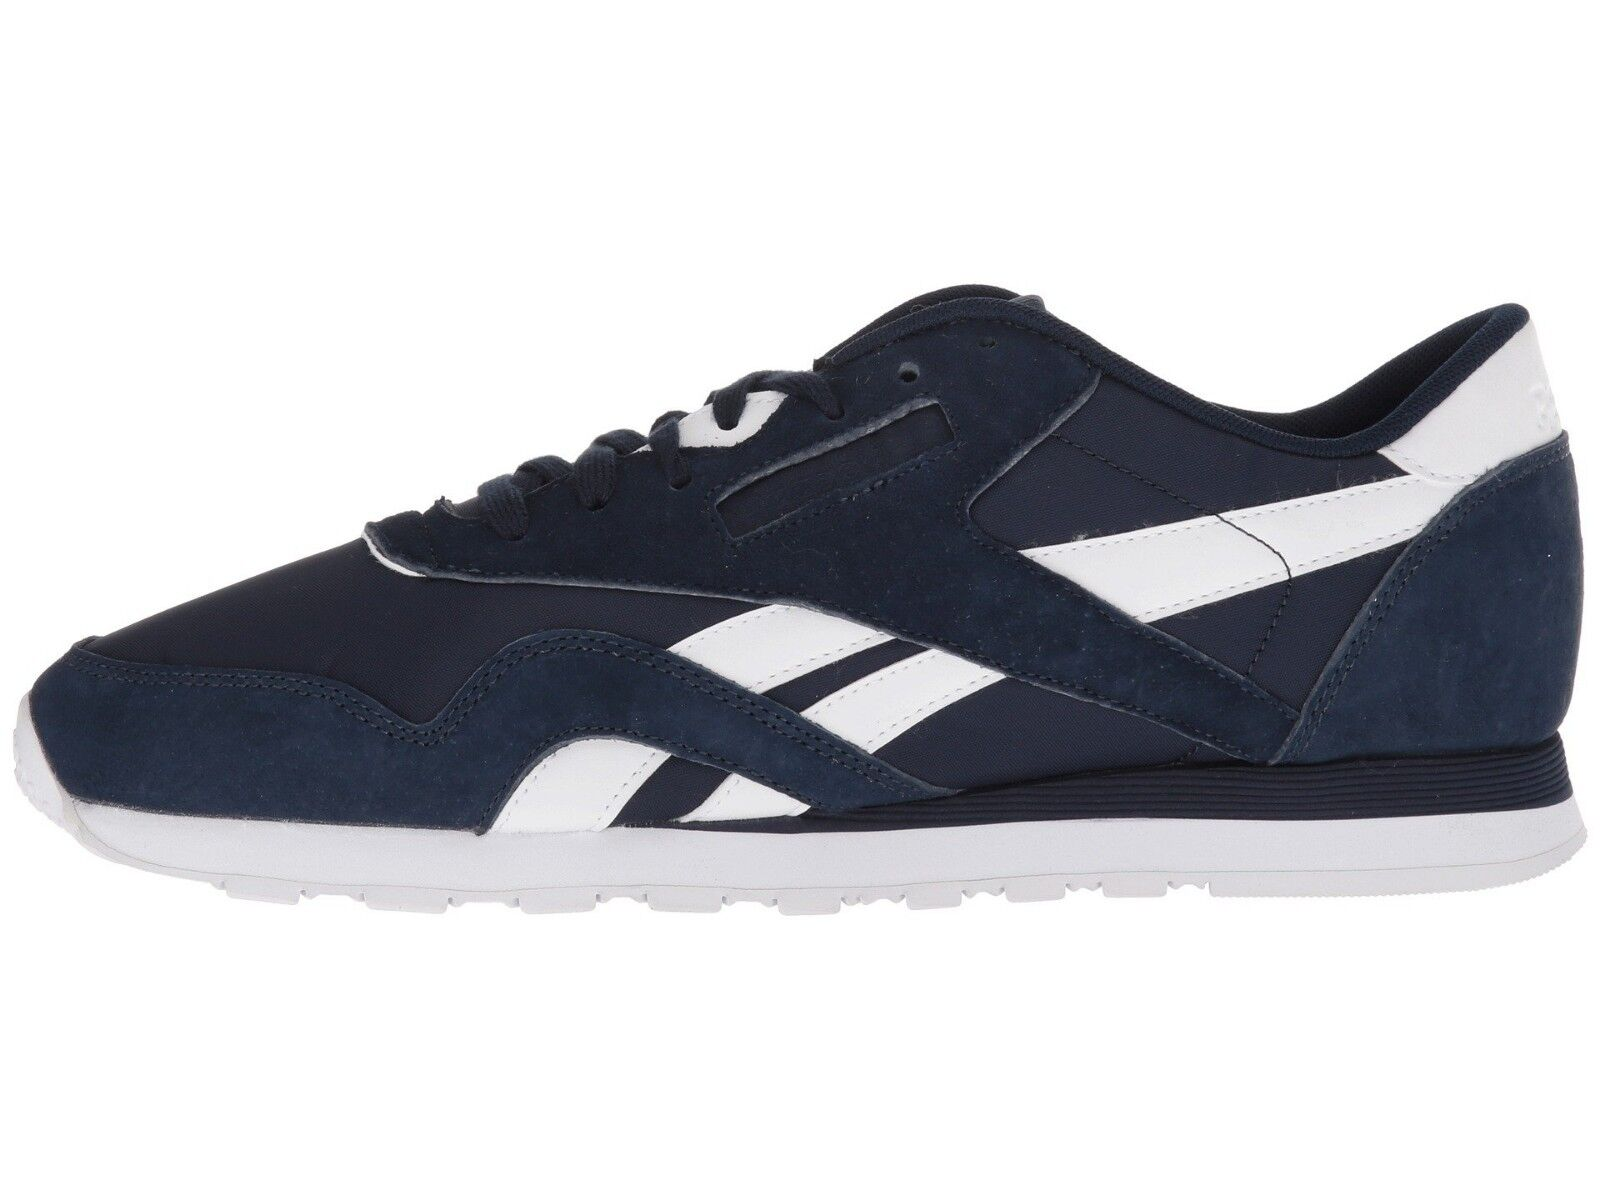 Reebok Homme CL NYLON PN Chaussures Navy/Blanc BS9804 c